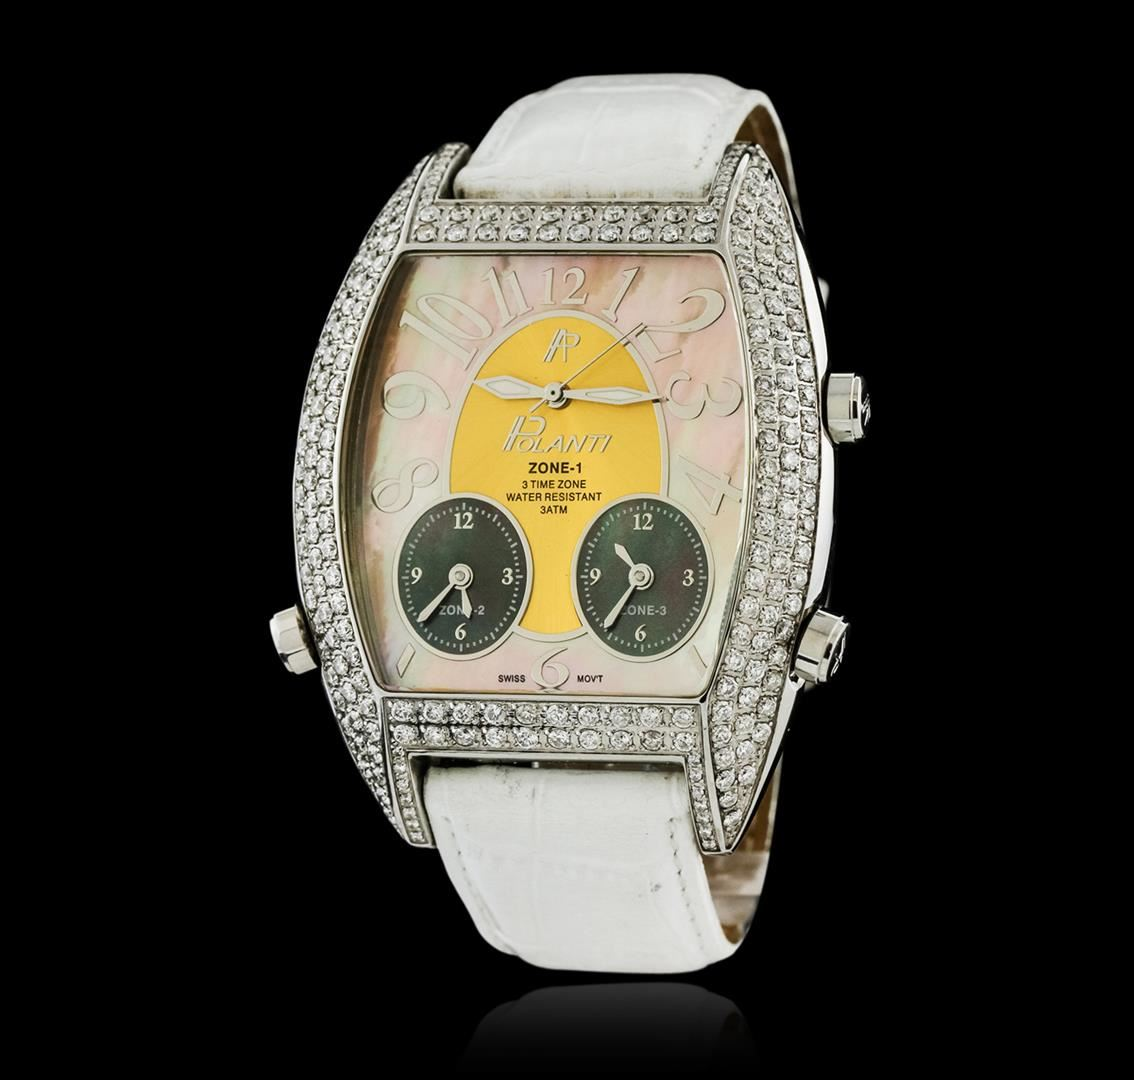 Polanti USA watches combine high quality and style with ...